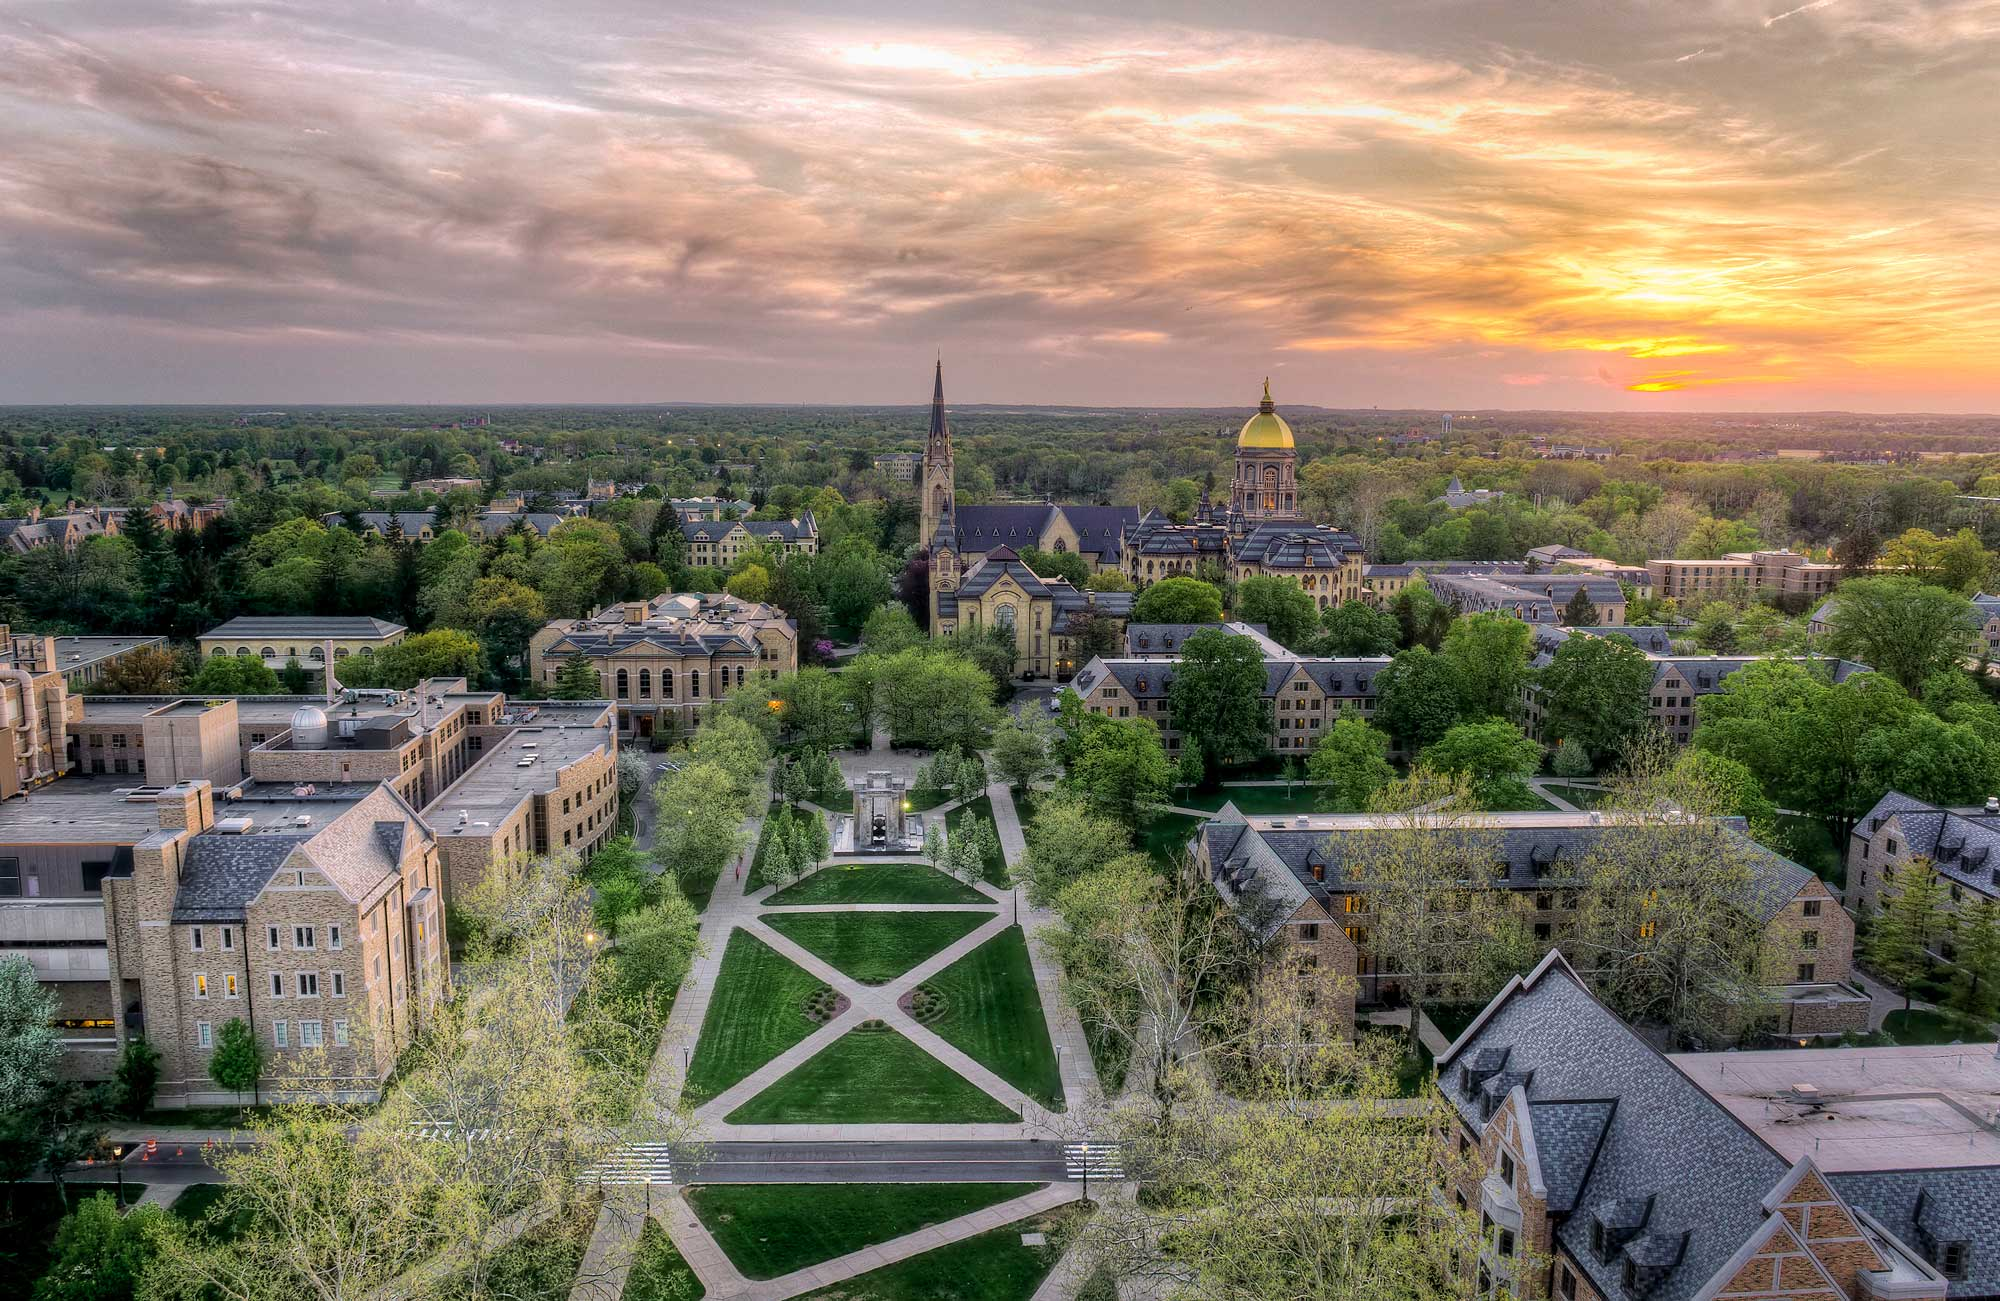 Pulte family foundation makes $111 million gift to University of Notre Dame